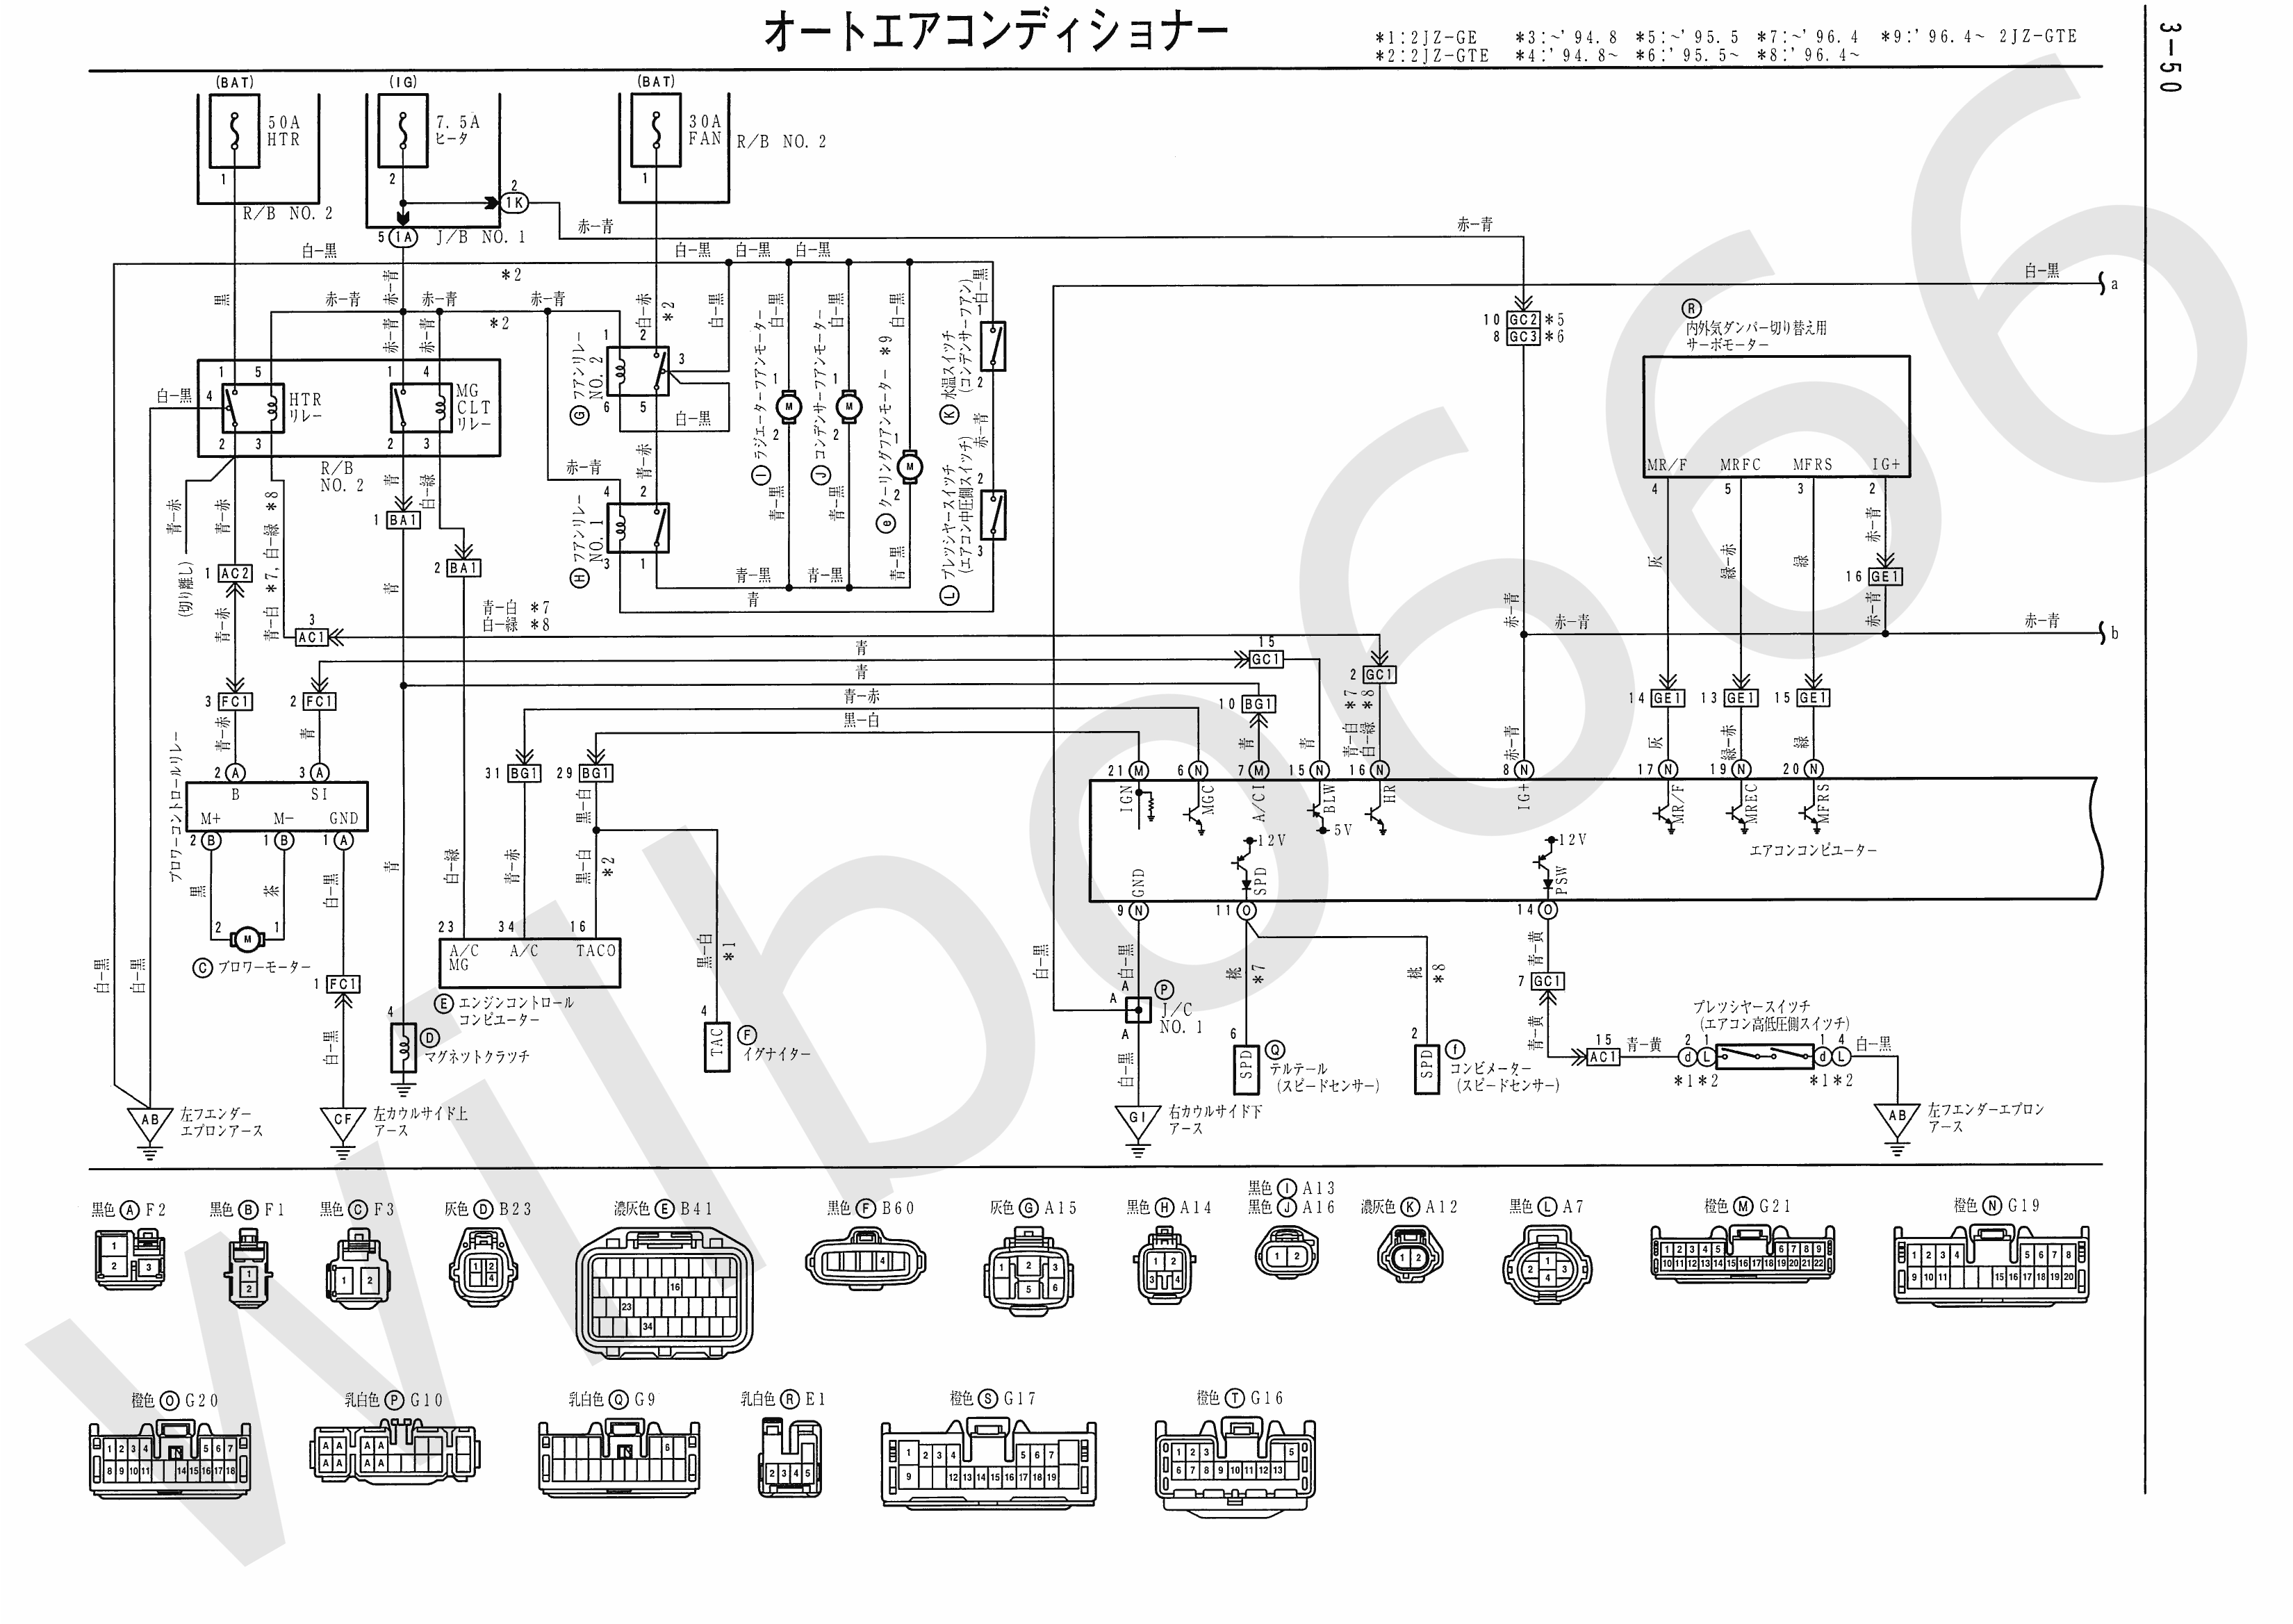 JZA80 Electrical Wiring Diagram 6742505 3 50 wilbo666 2jz ge jza80 supra engine wiring 1995 lexus sc300 wiring diagrams at gsmportal.co